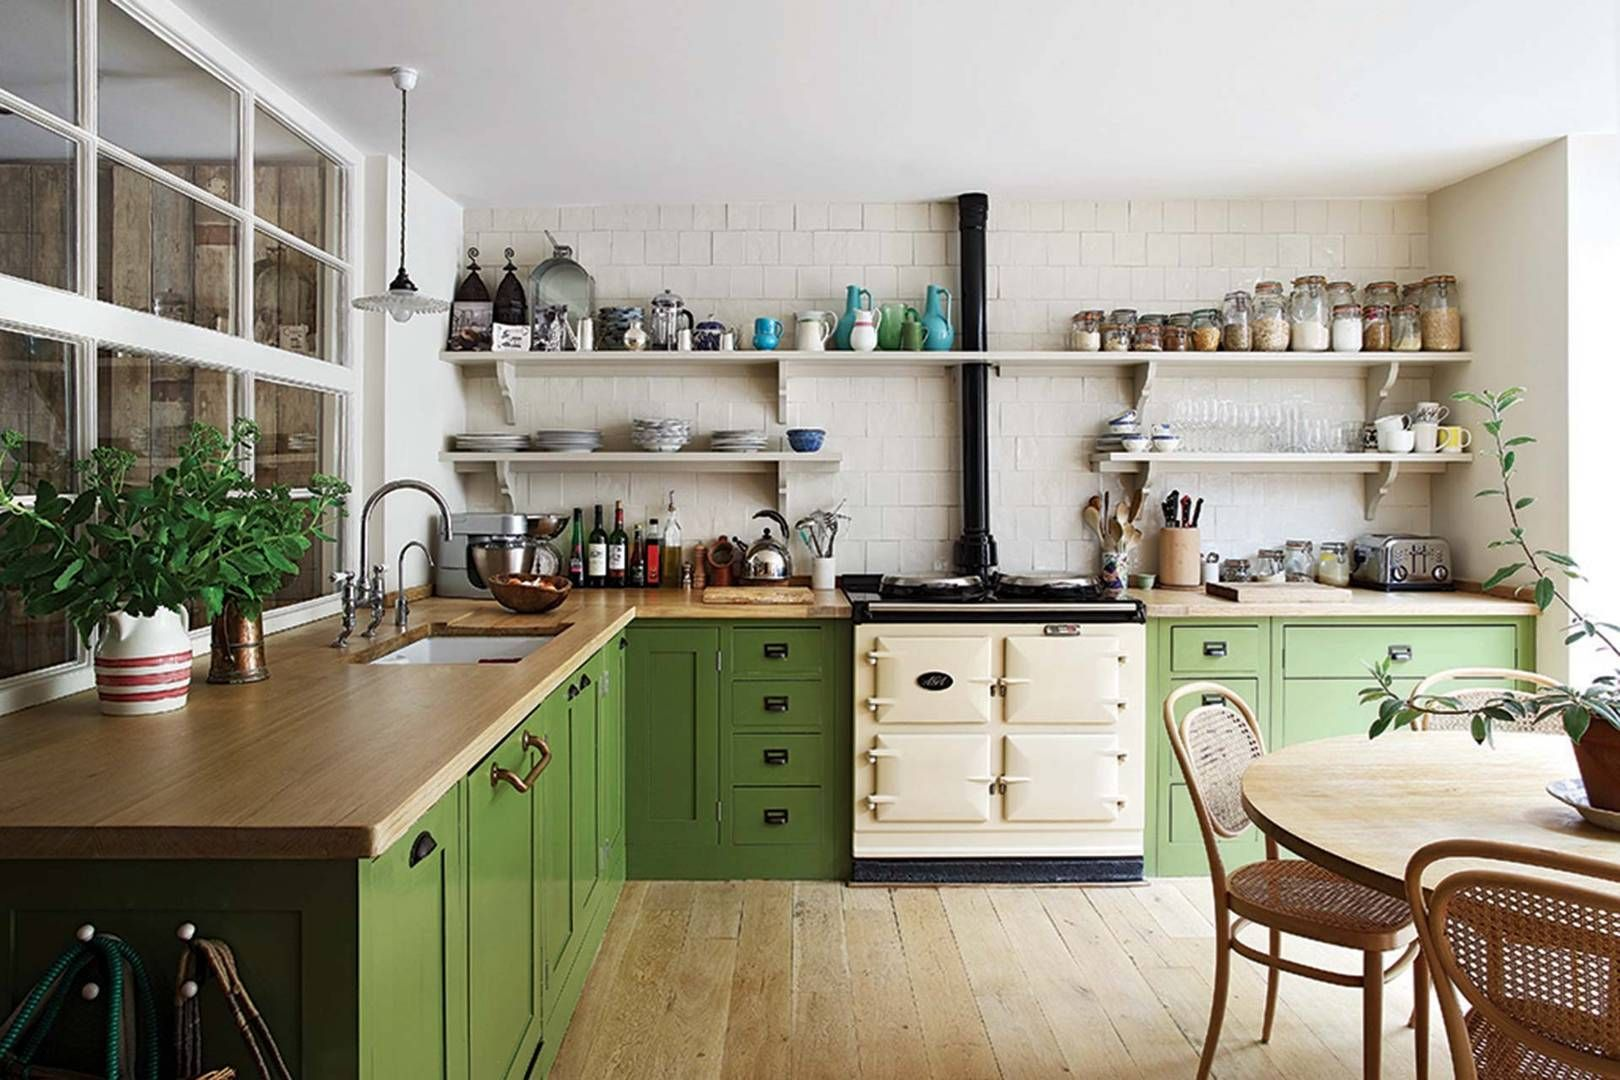 The London home of Henrietta Courtauld of The Land Gardeners remodelled by Retrouvius #plainenglishkitchen